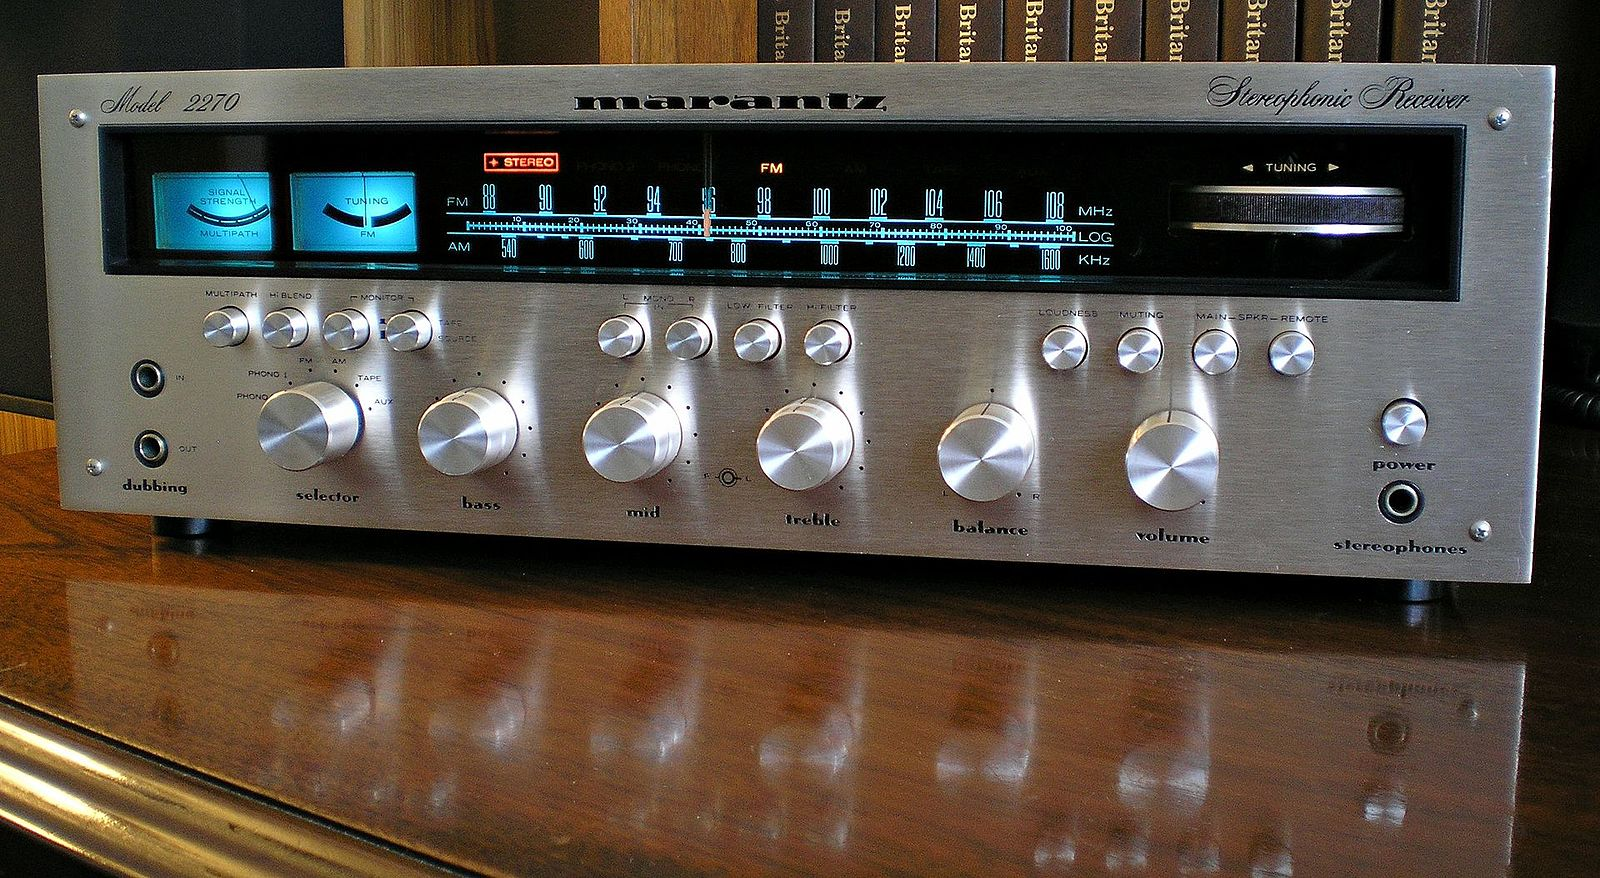 Vintage Marantz receiver, with machined aluminum and lots of knobs to fiddle with. Photo by  Ron Clausen .